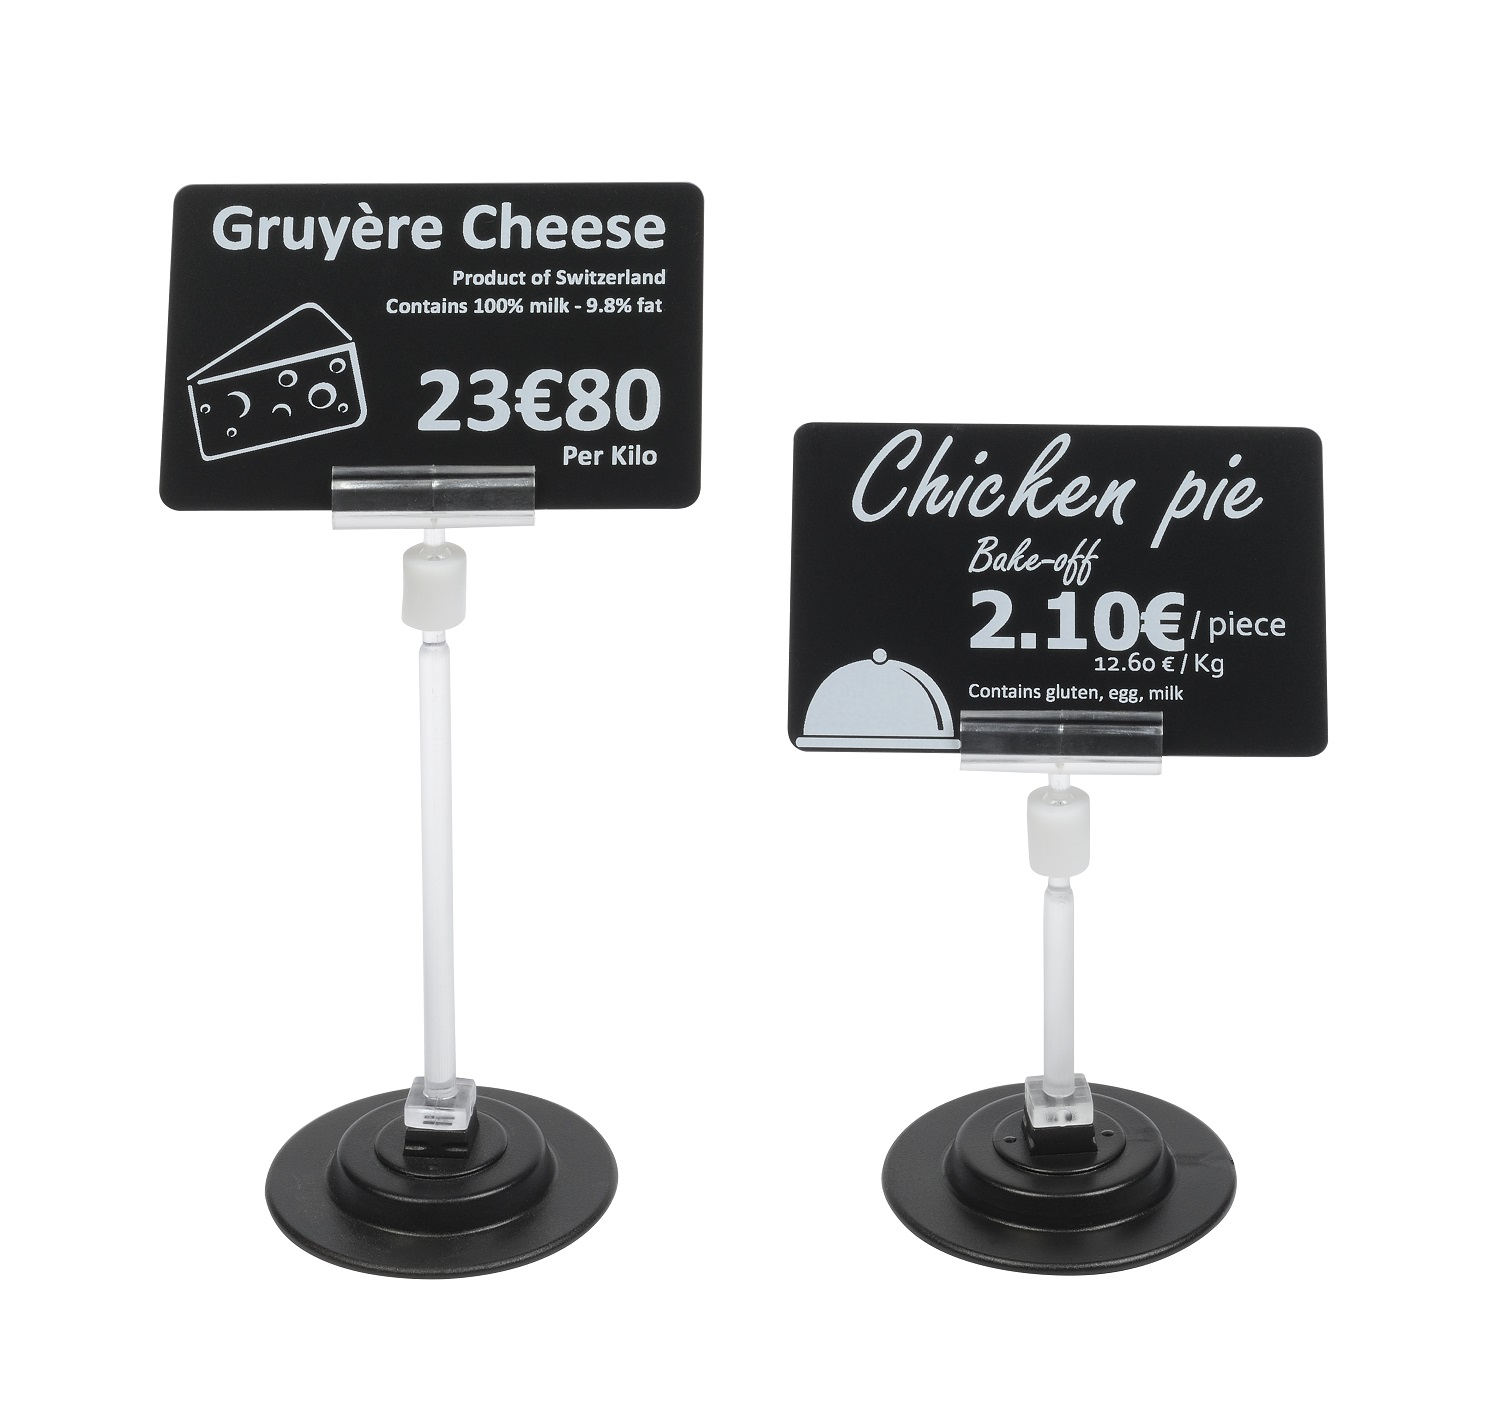 An image of Price Tags